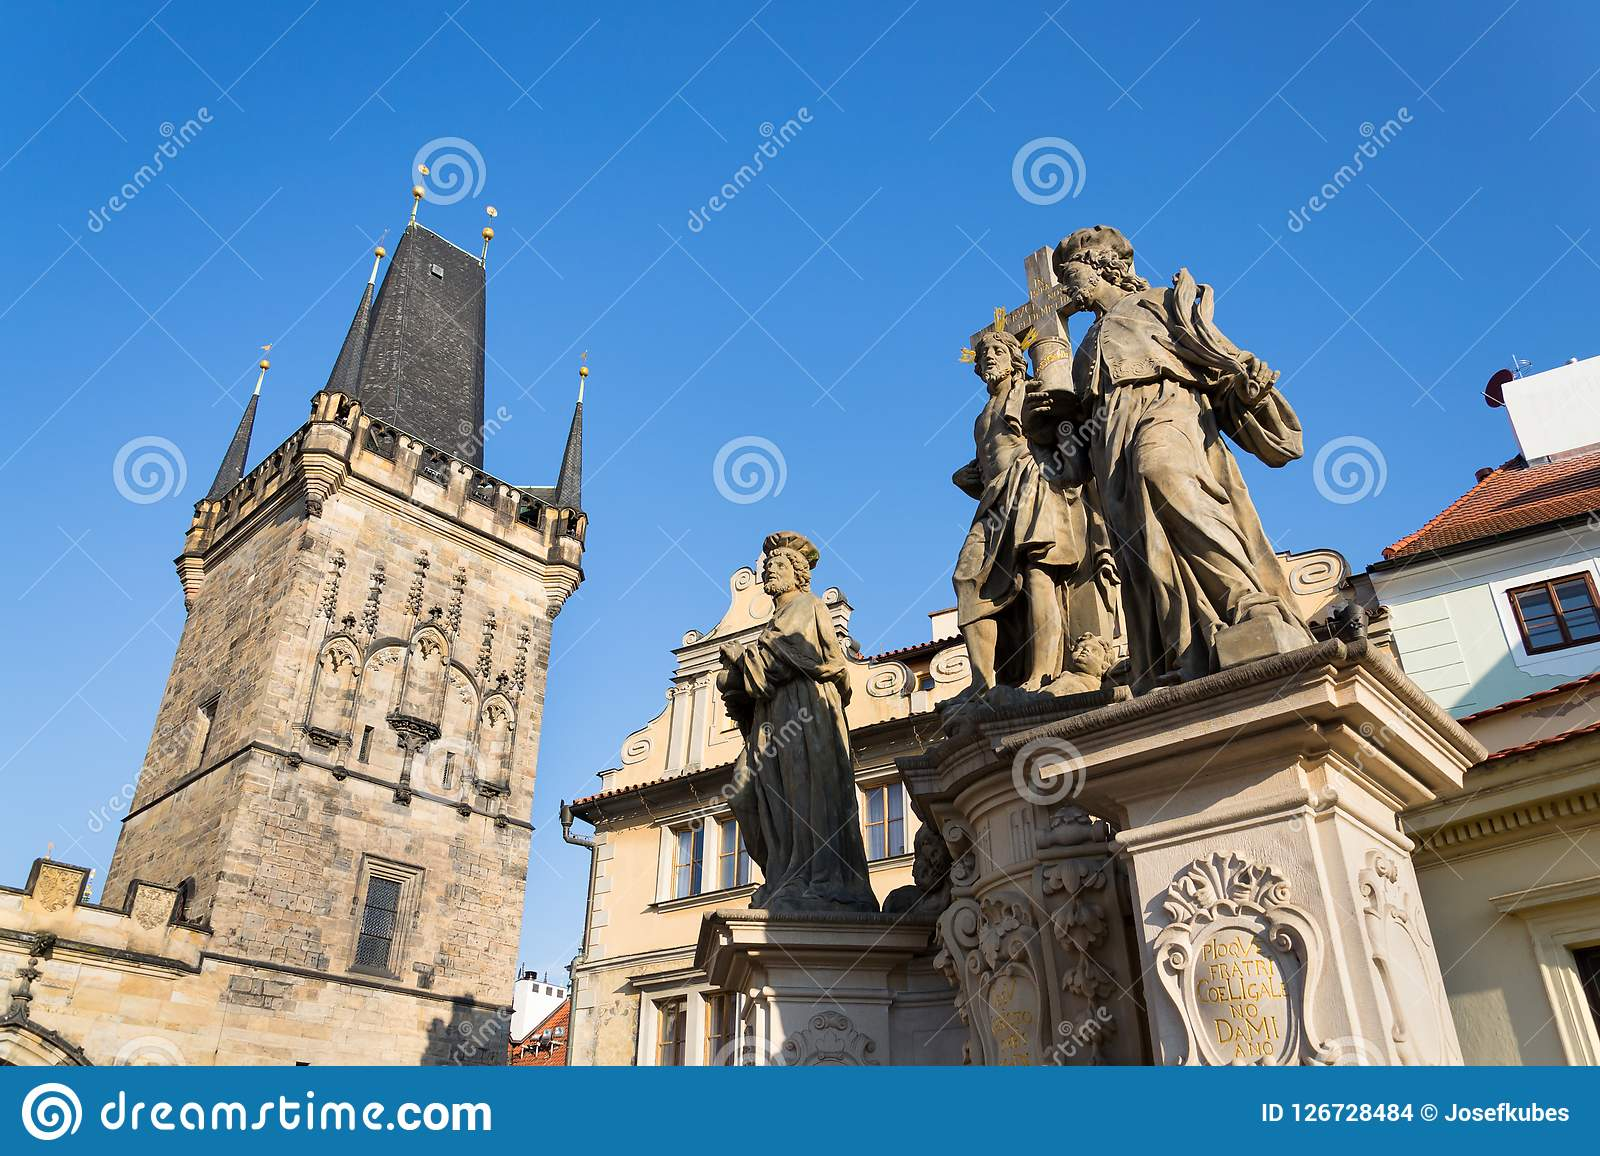 Statue of Holy Savior with Saints Cosmas and Damian detail on Charles Bridge, Prague, Czech Republic. Statue of Holy Savior with Saints Cosmas and Damian detail Stock Images